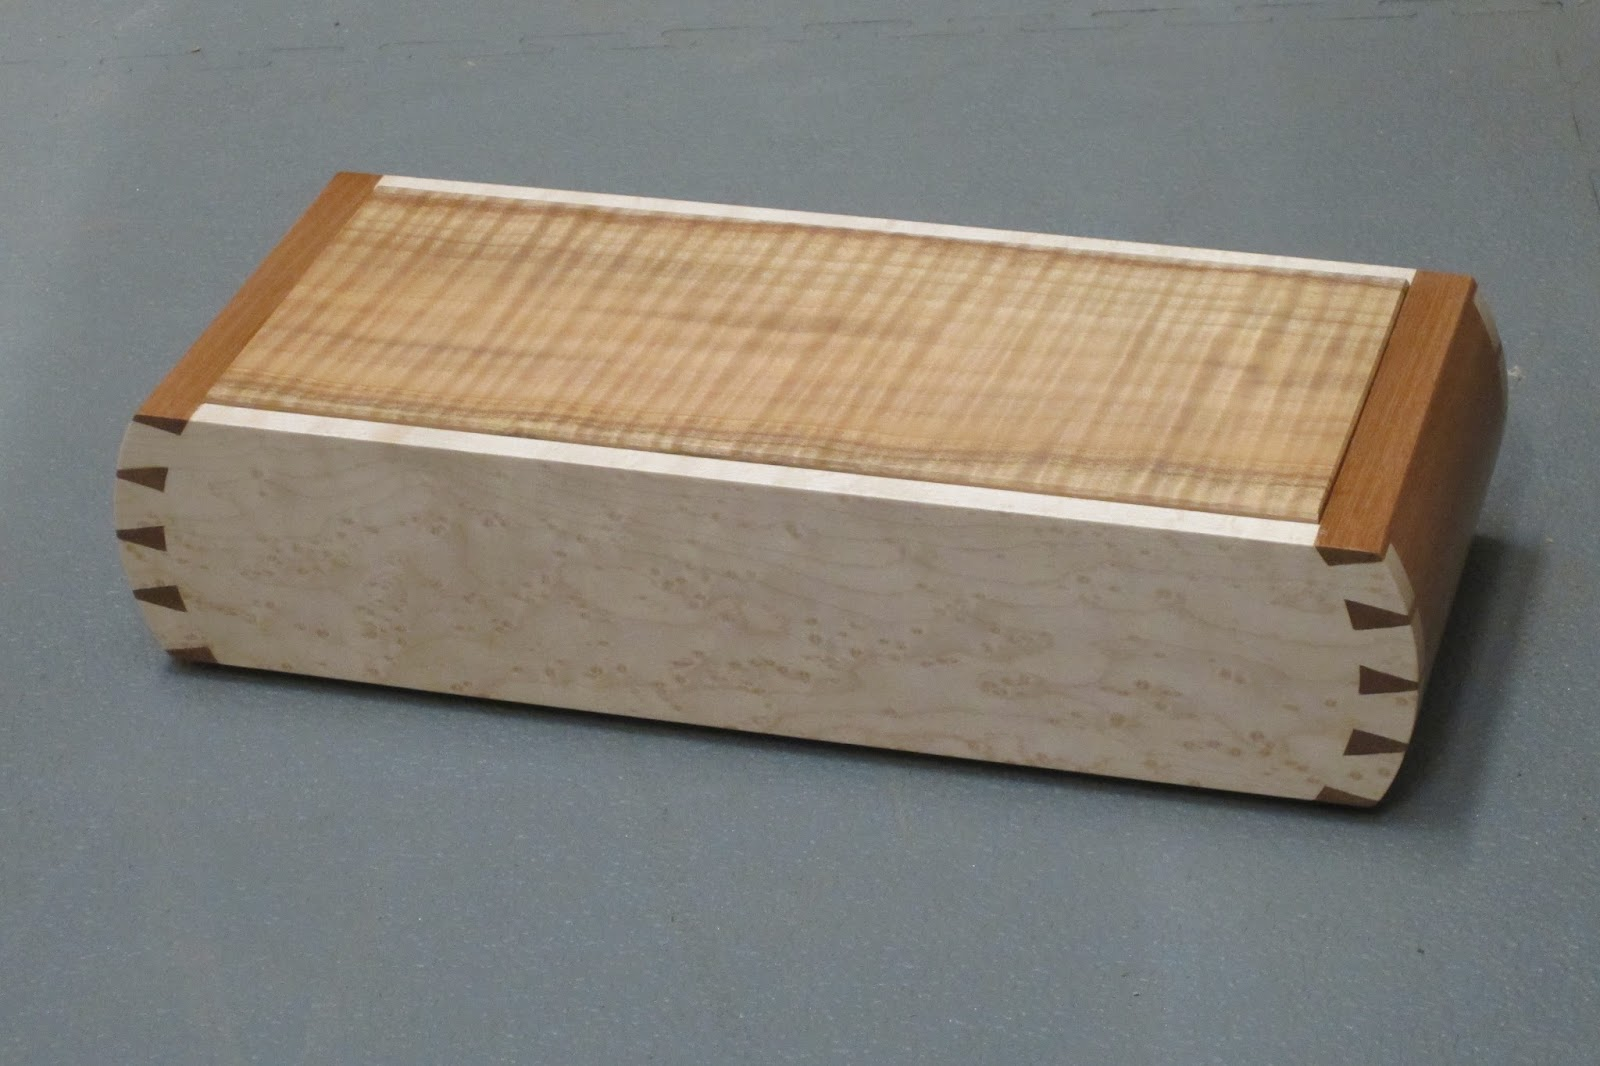 dovetail box. curved dovetail box. box